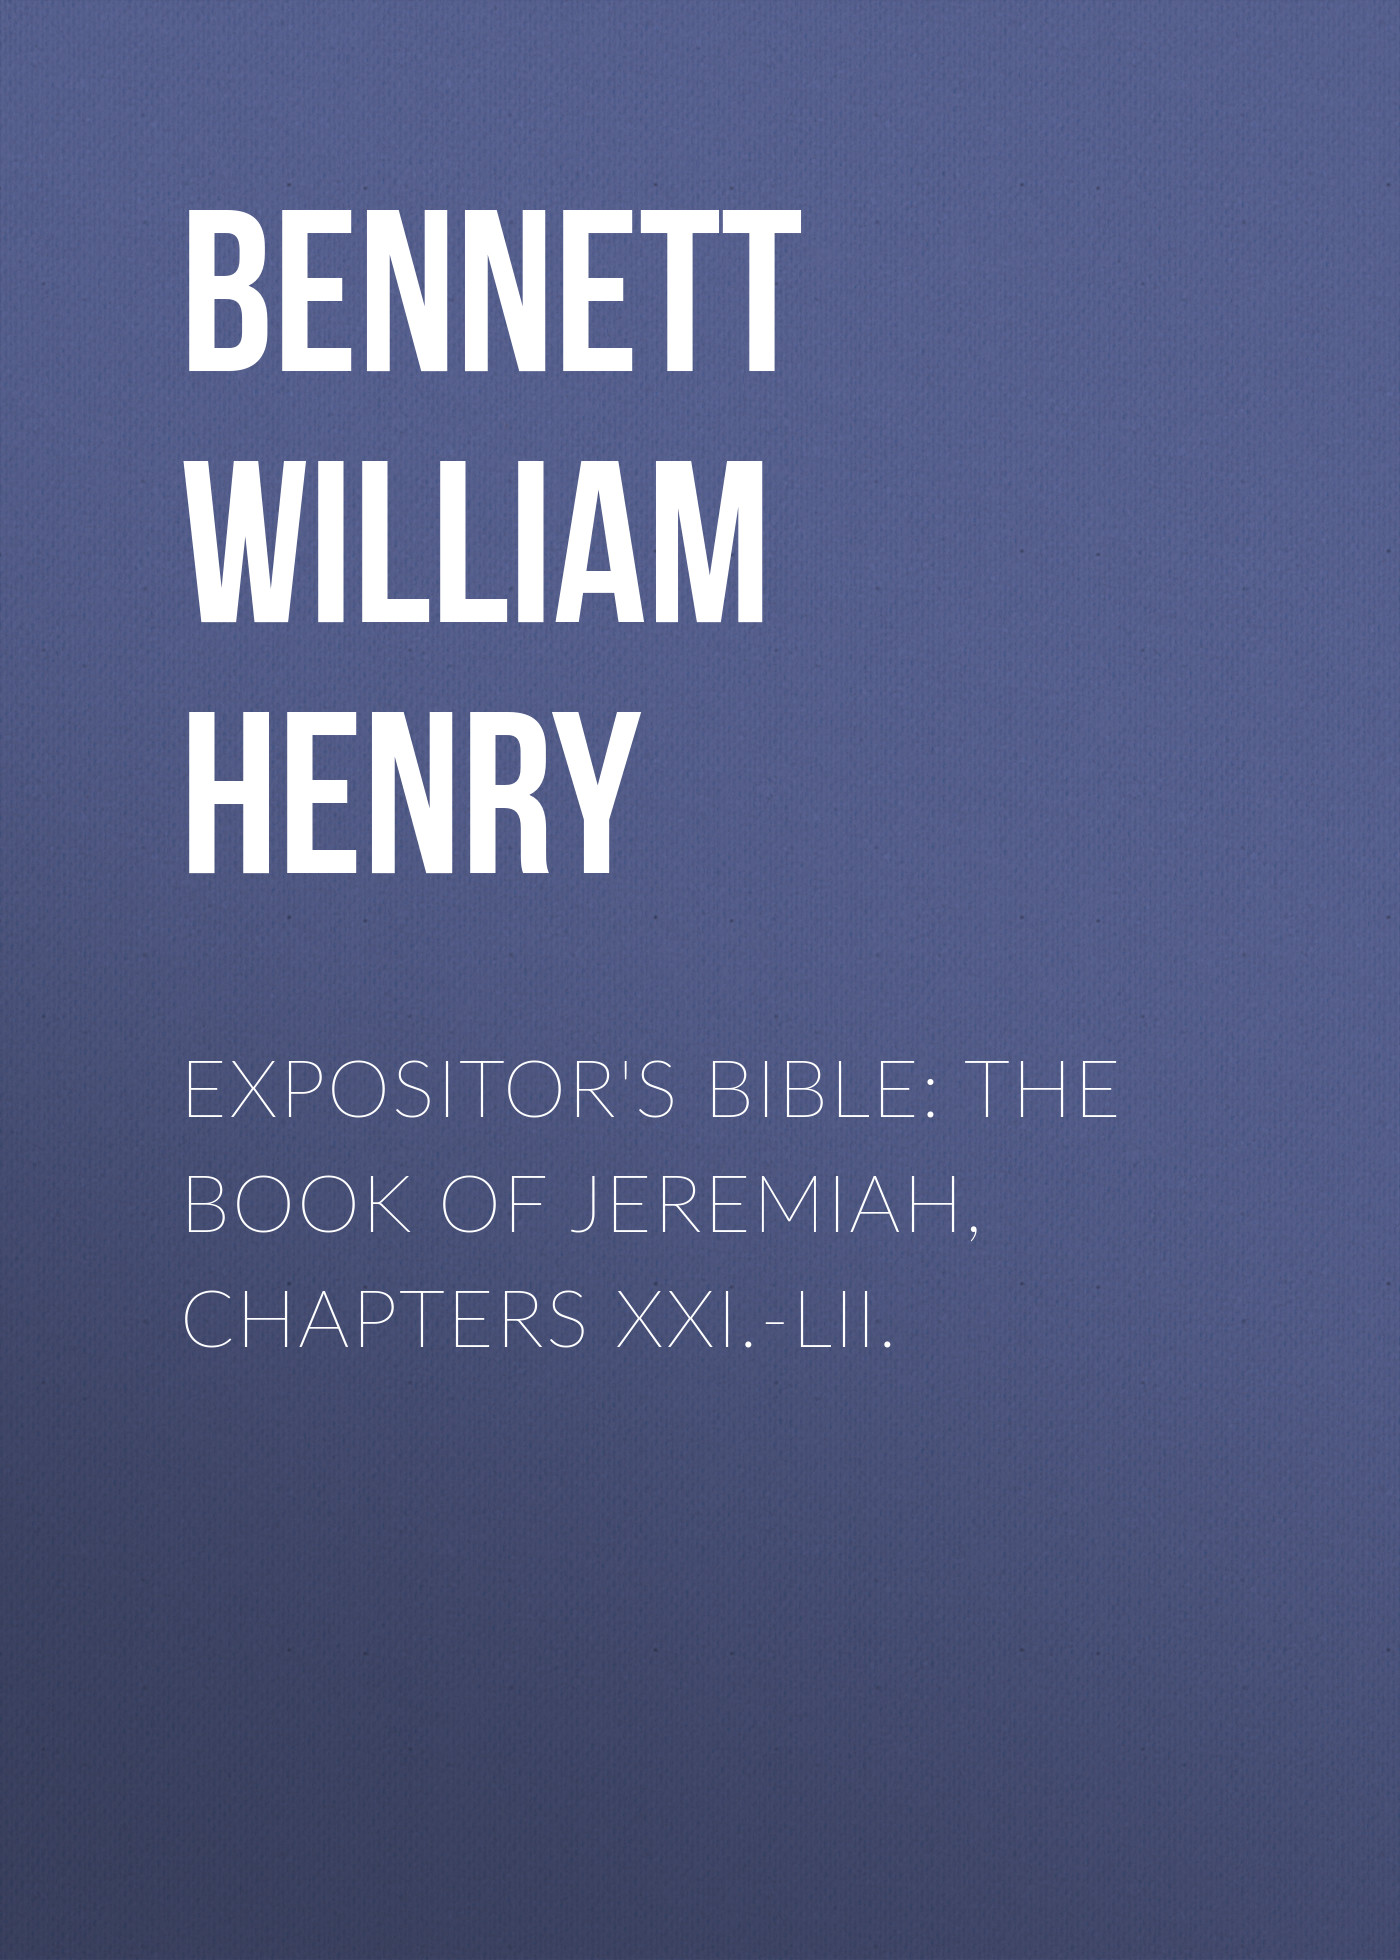 Bennett William Henry Expositor's Bible: The Book of Jeremiah, Chapters XXI.-LII. bennett william henry the expositor s bible the books of chronicles